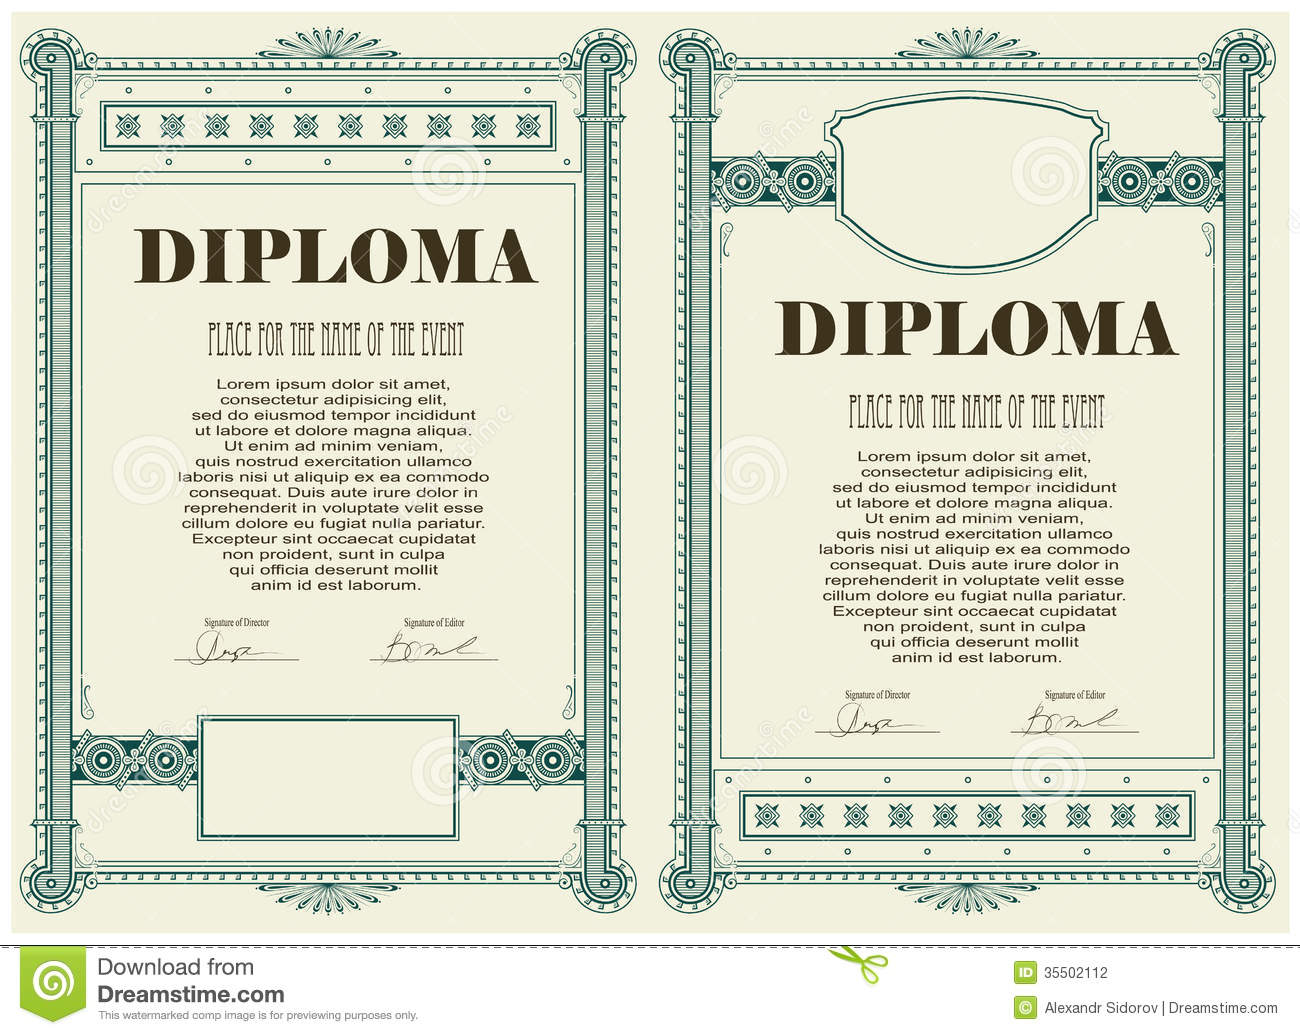 Certificate or diploma template stock photography image 35502112 royalty free stock photo download certificate or diploma template yadclub Image collections